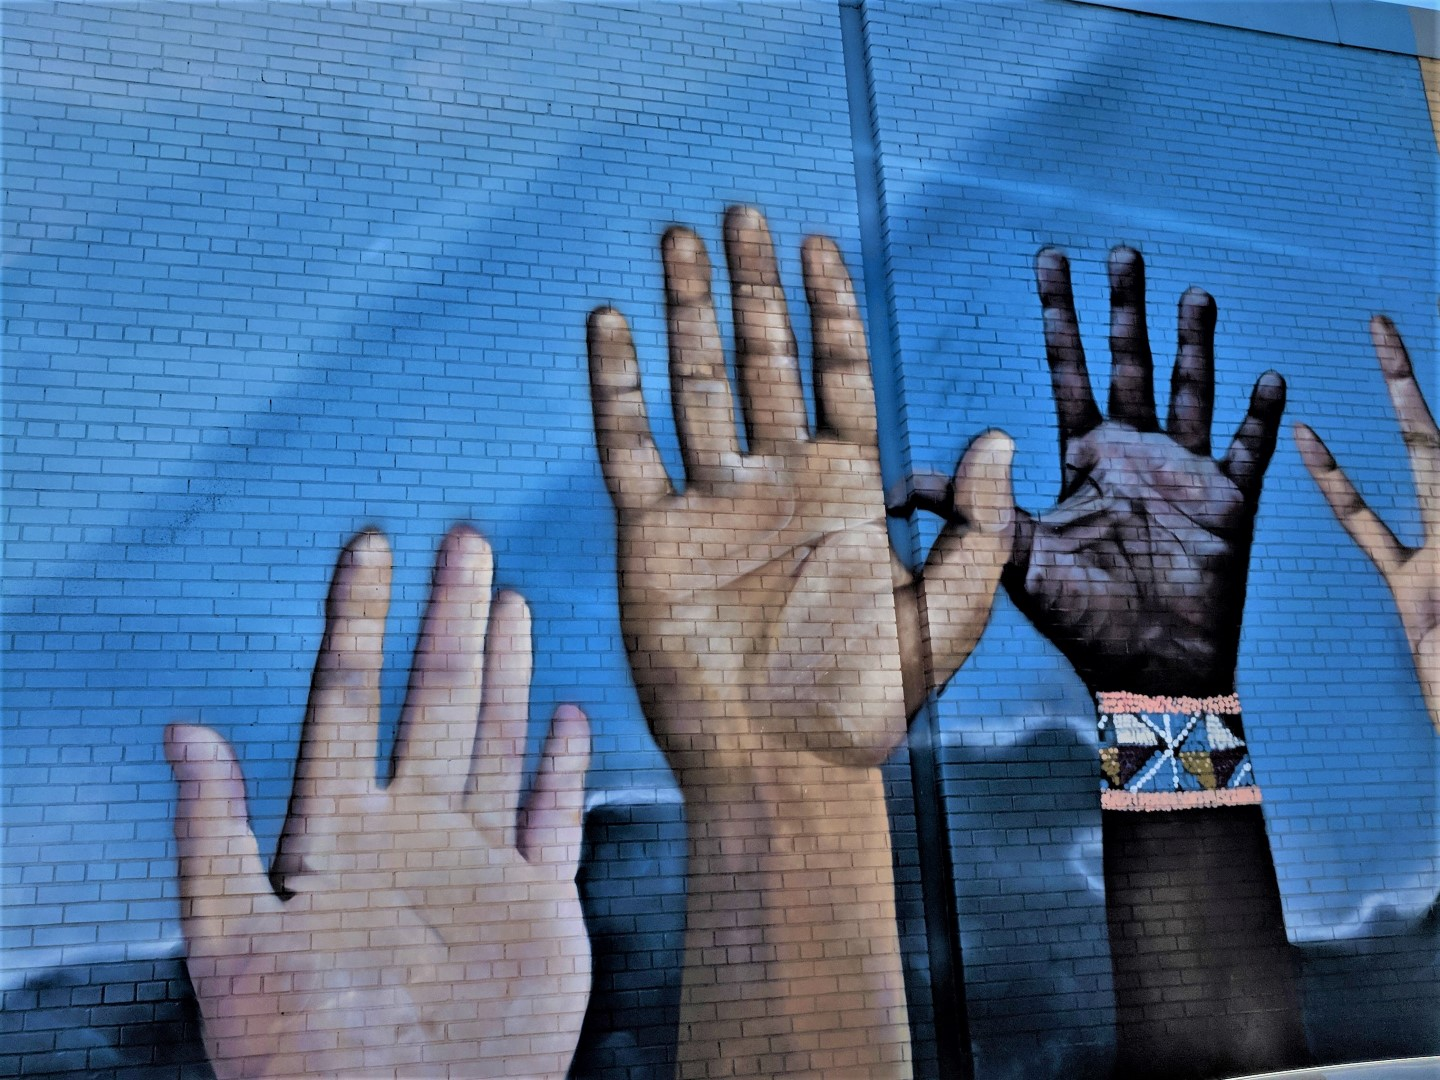 street art of hands on blue wall